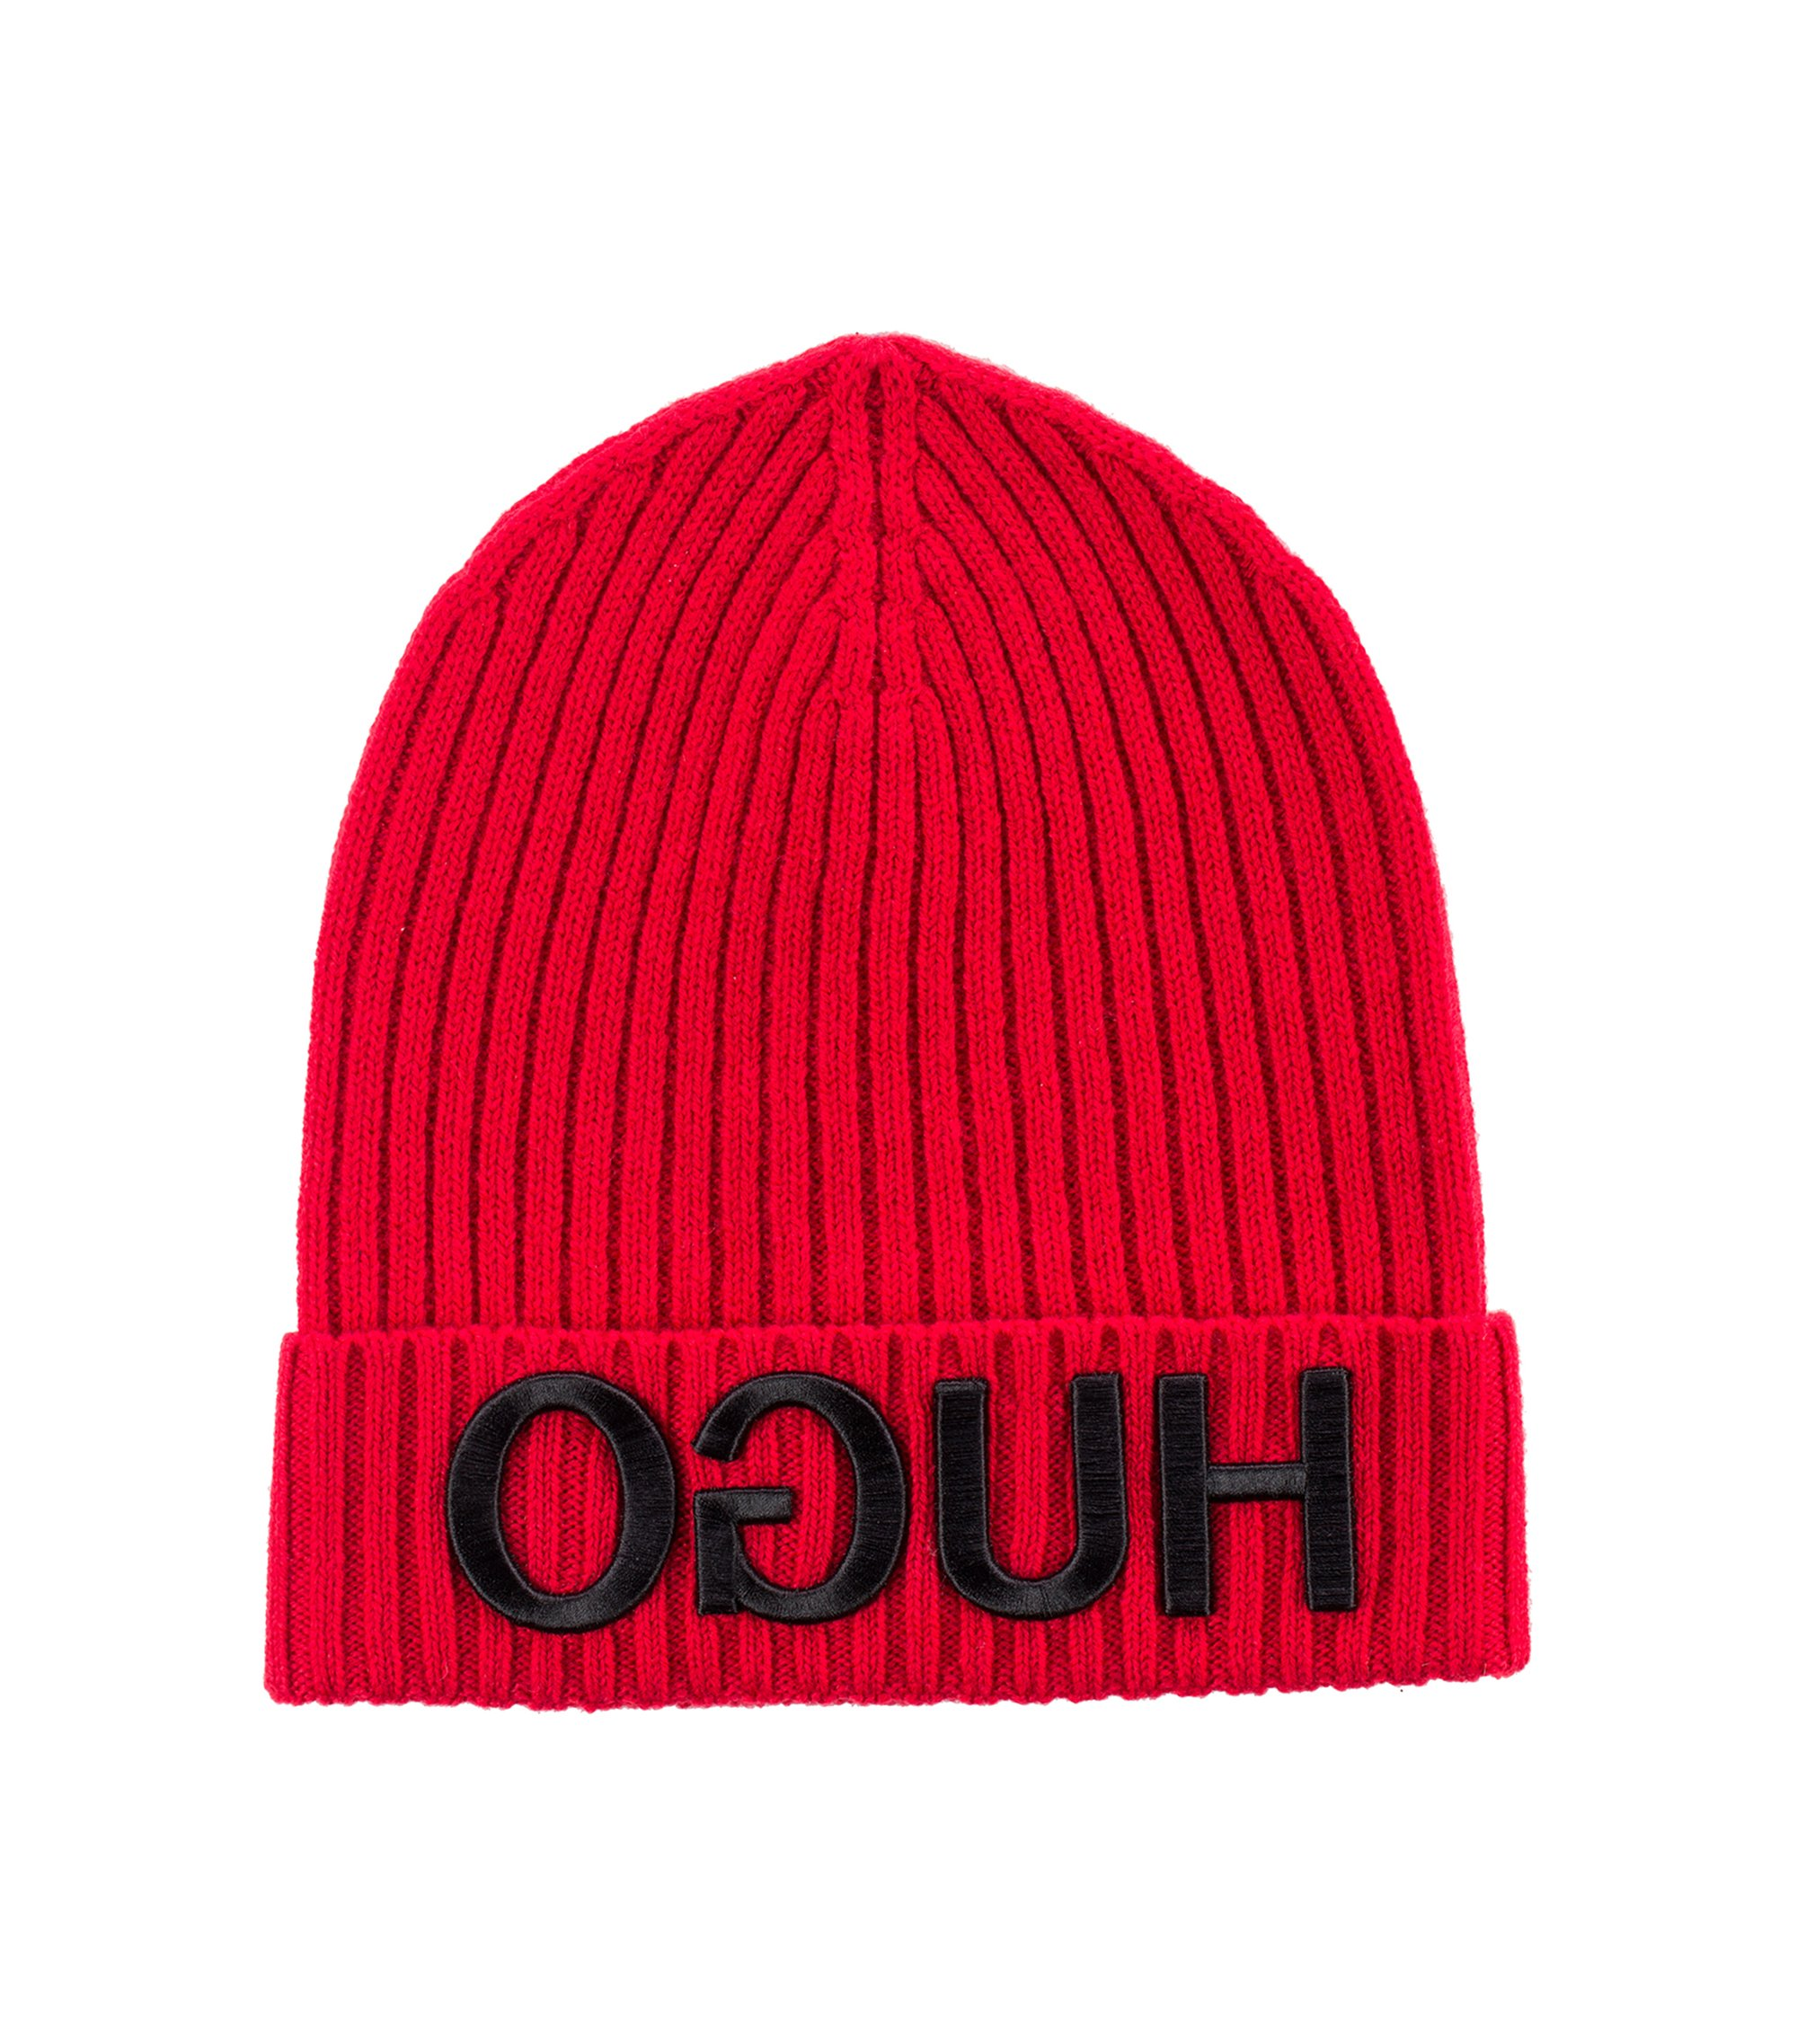 Unisex beanie hat in wool with reverse logo, Red